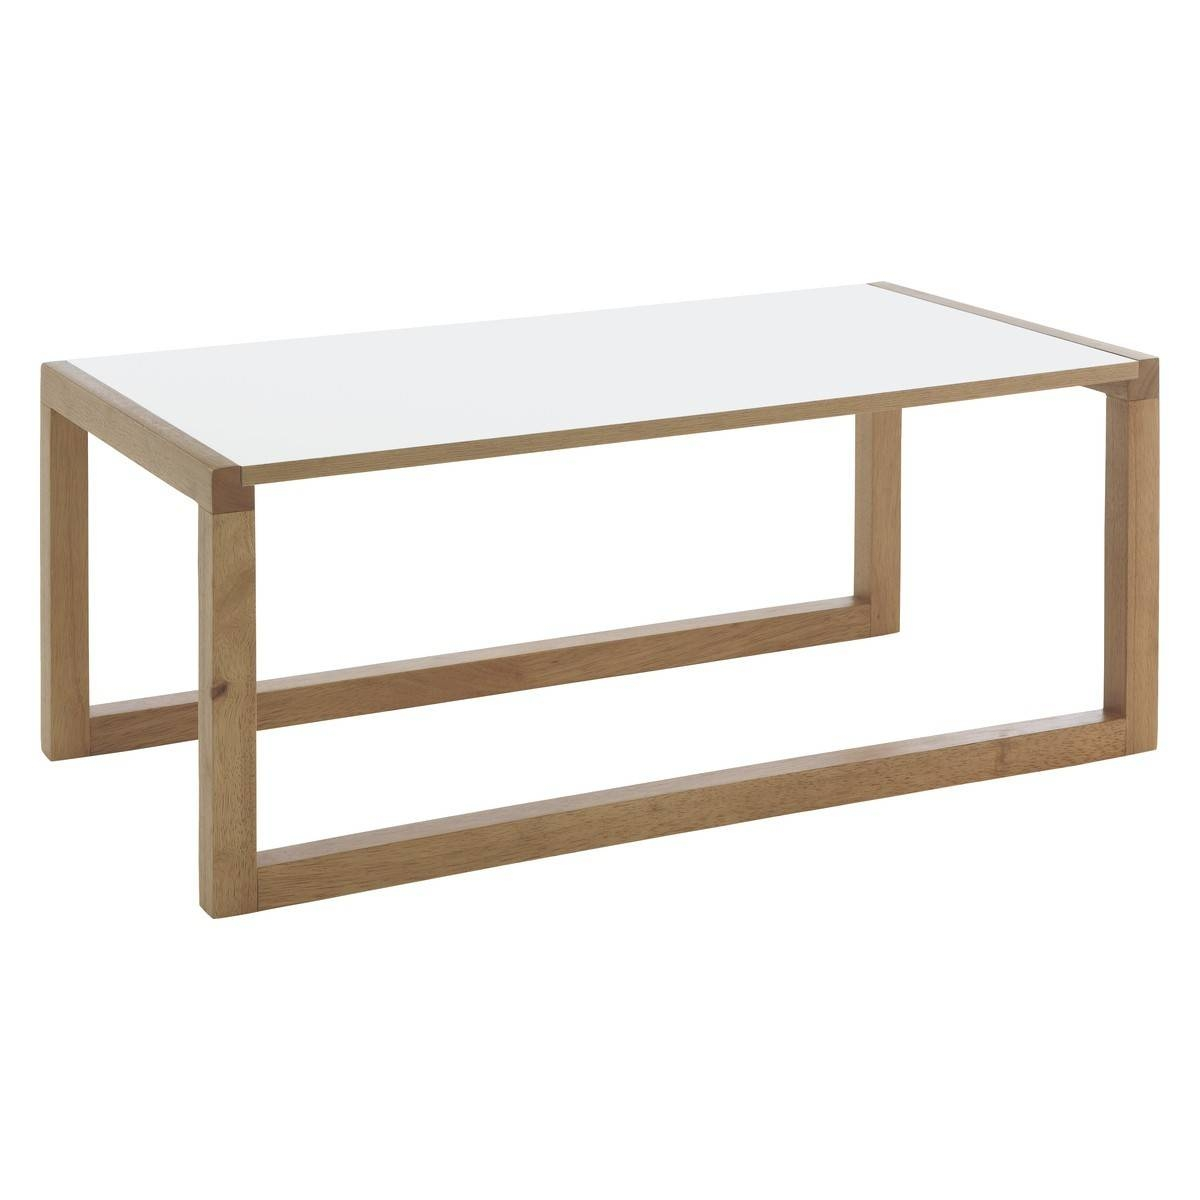 Kenstal White Long Coffee Table | Buy Now At Habitat Uk in Long Coffee Tables (Image 7 of 15)